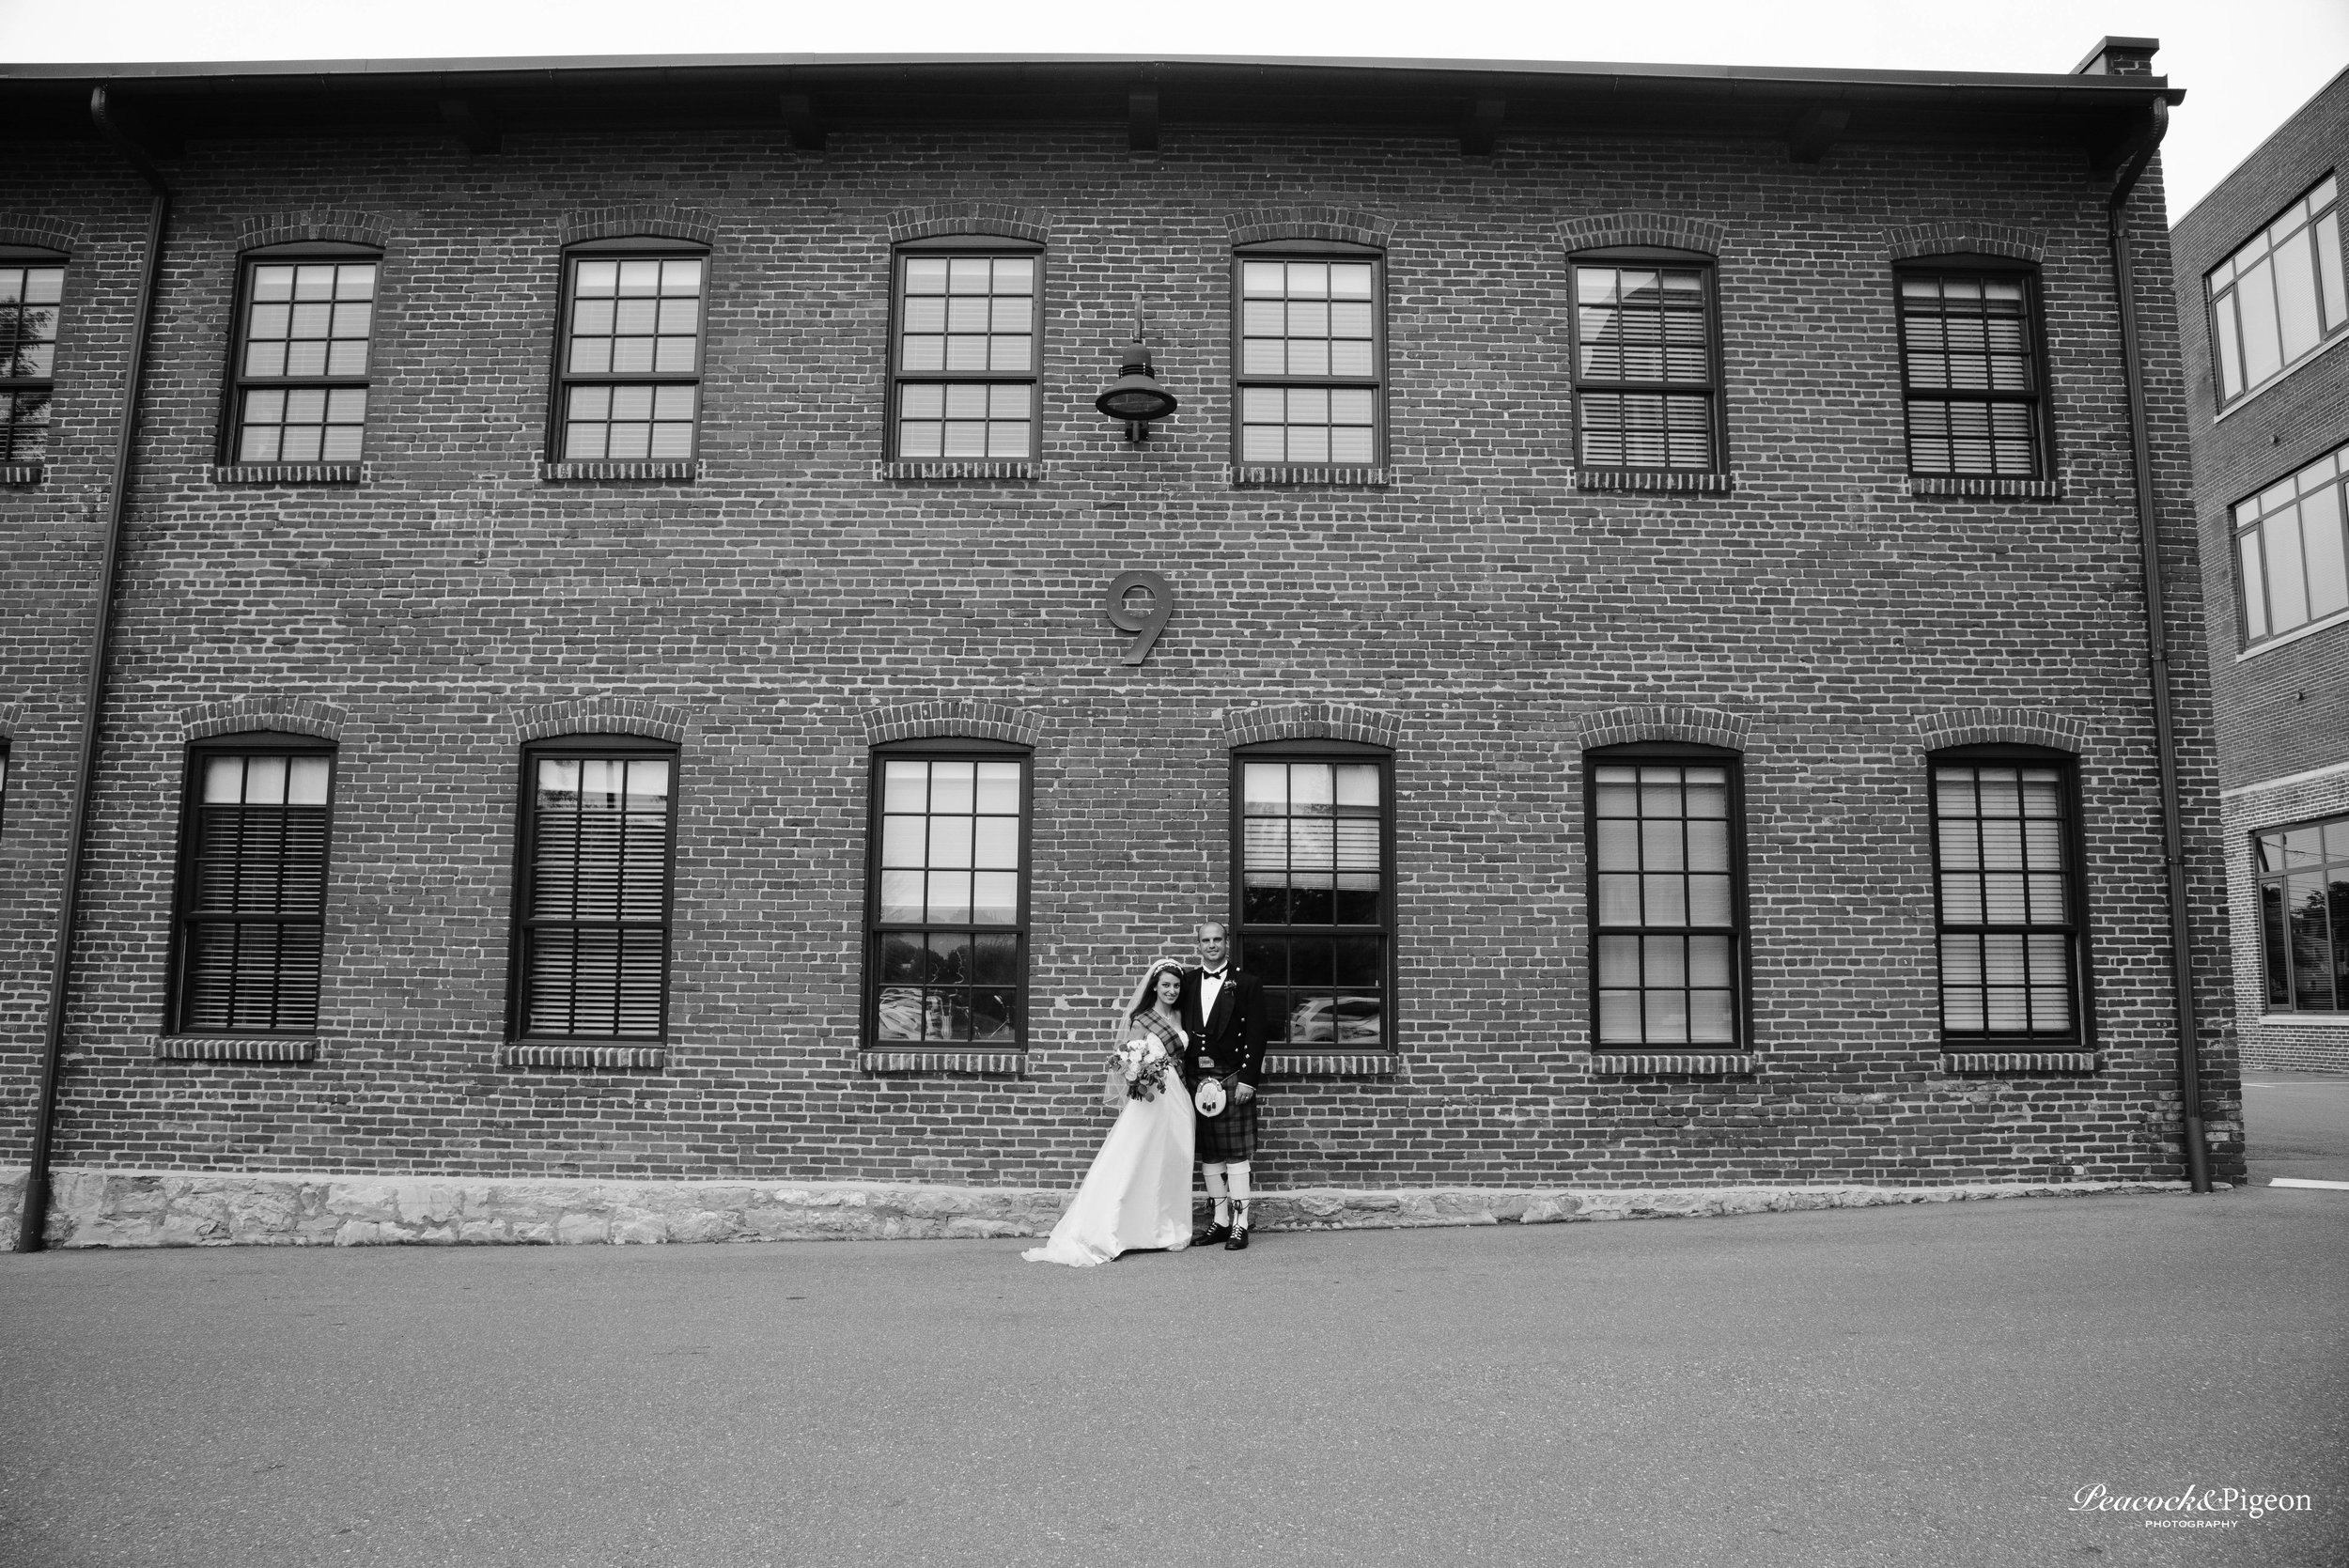 Callum_and_Sara's_Wedding_at_the_Cork_Factory_Hotel_in_Lancaster-Part_Five_The_Bridal_Party_Black_and_White_Watermarked-75.jpg